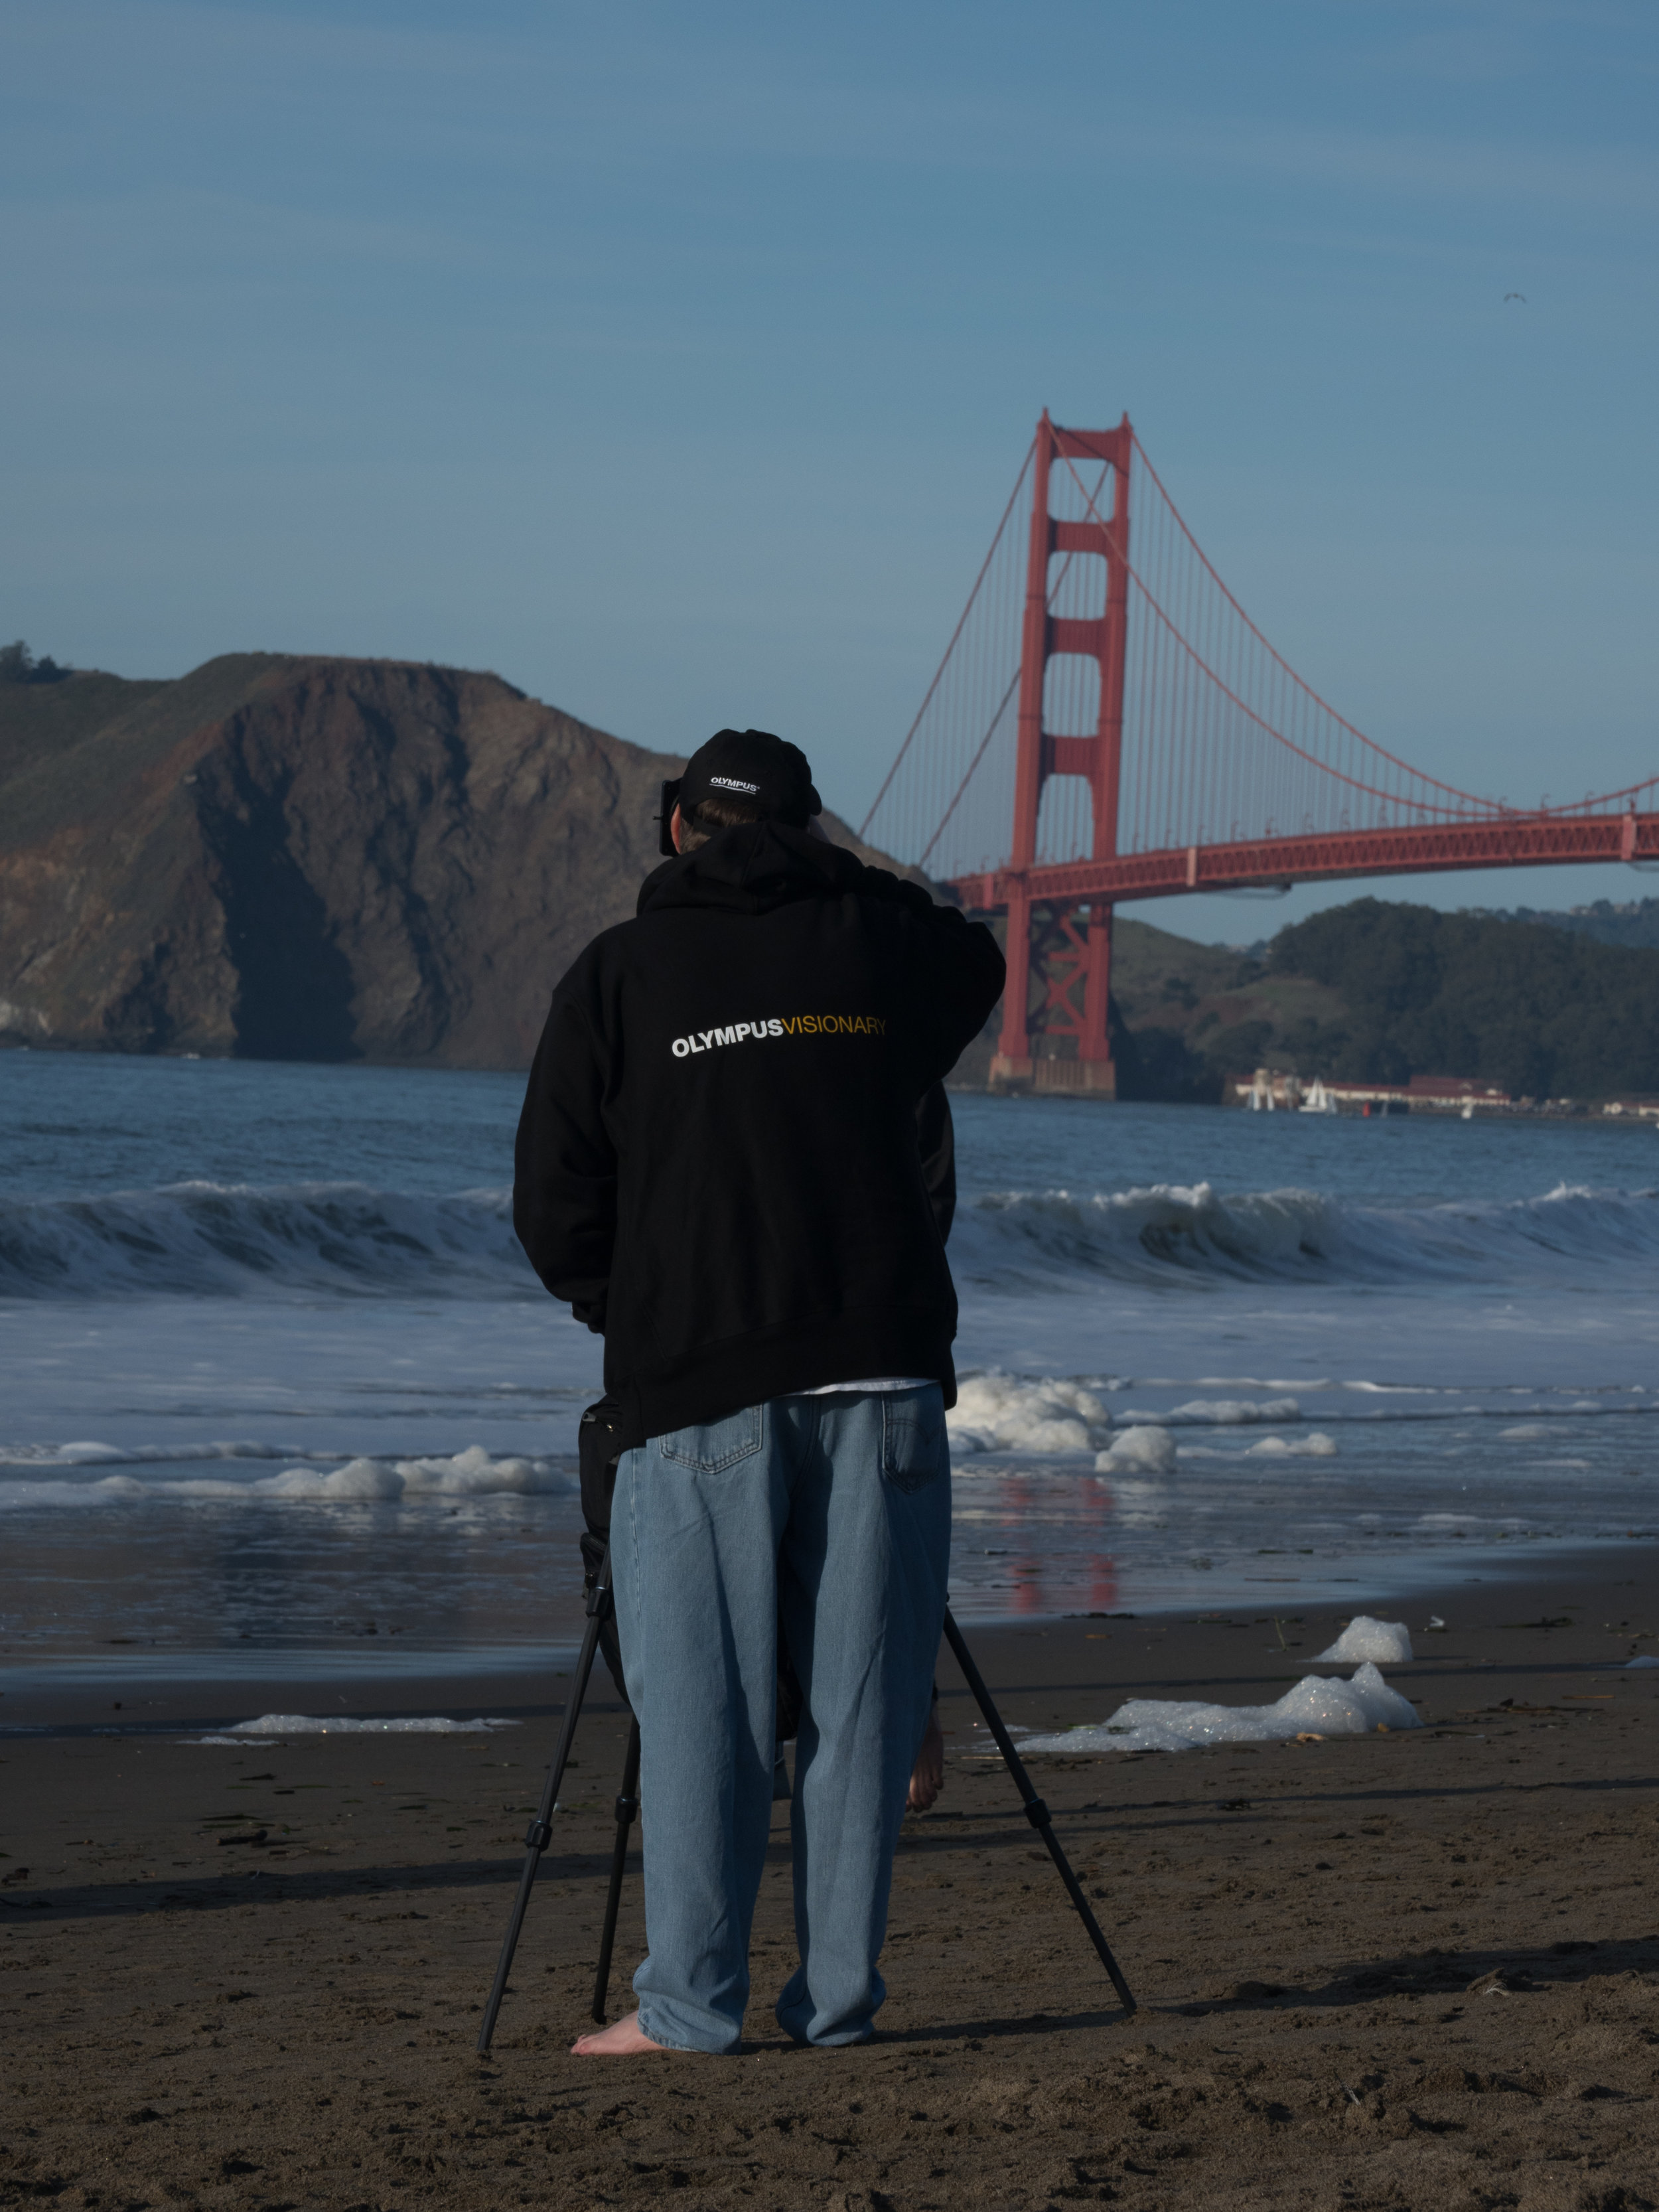 Alex photographing the Golden Gate...barefoot and beachy